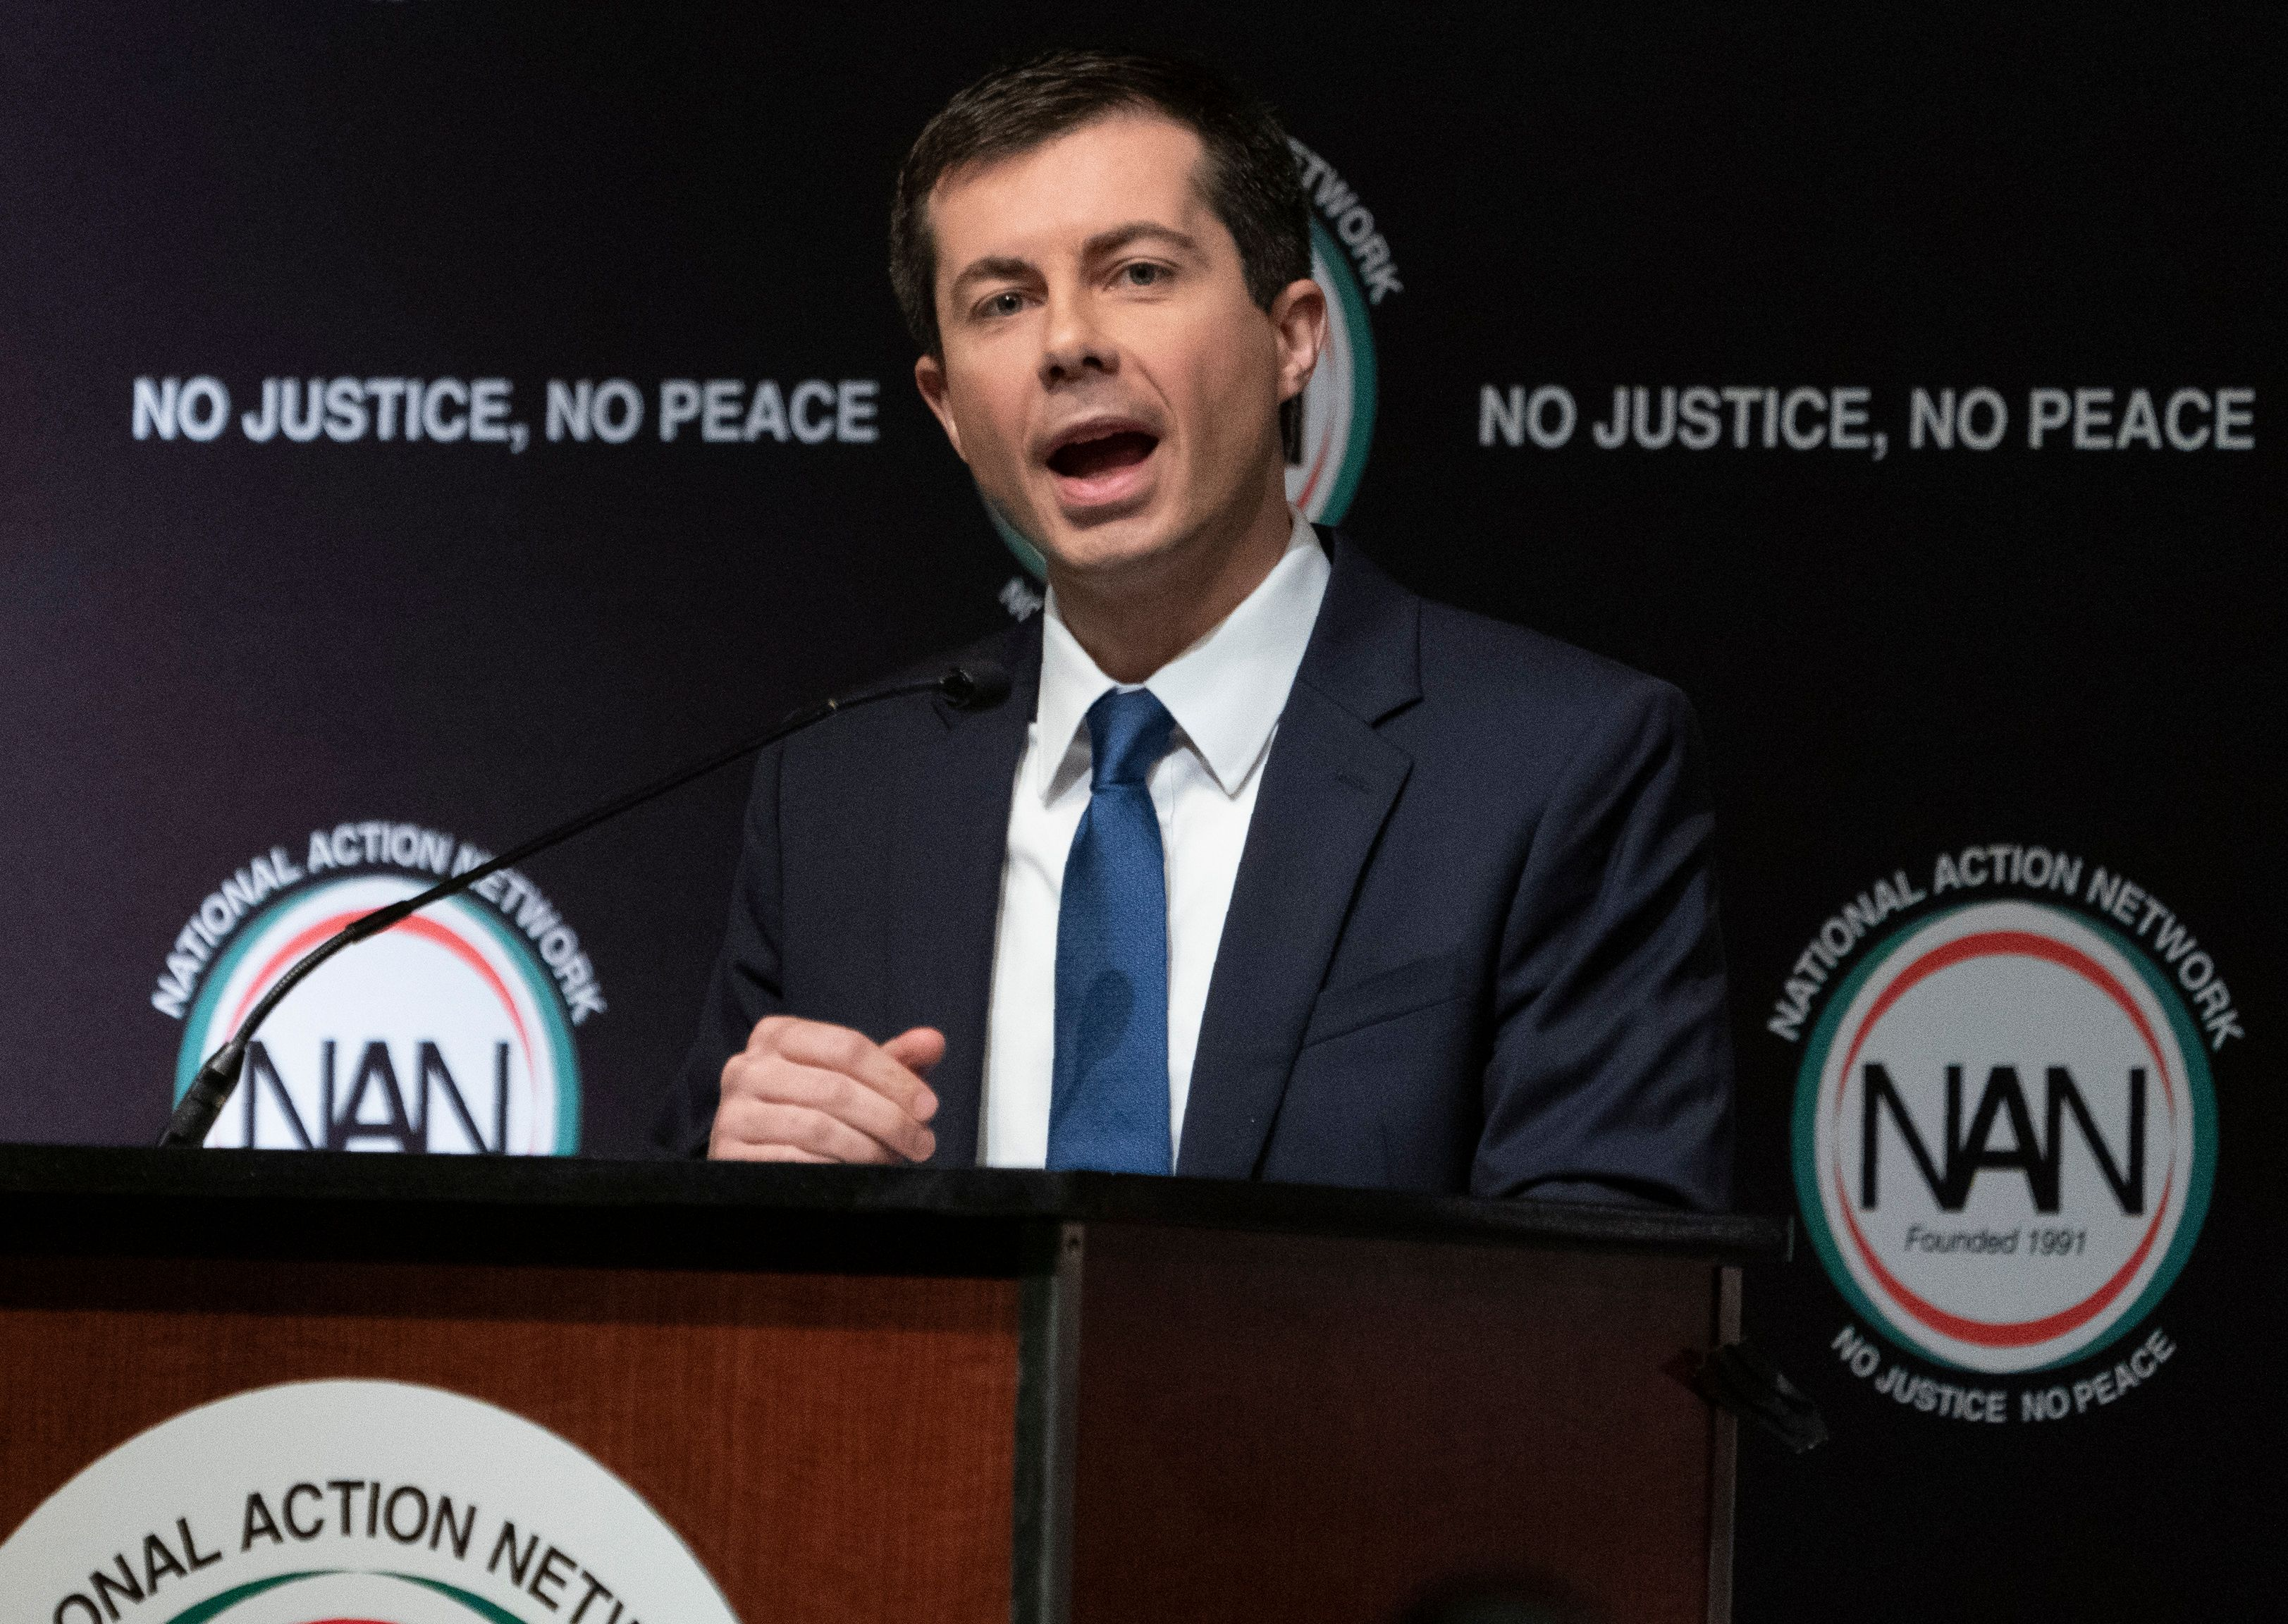 Democratic Presidential candidate Pete Buttigieg speaks during a gathering of the National Action Network April 4, 2019 in New York. (DON EMMERT/AFP/Getty Images)